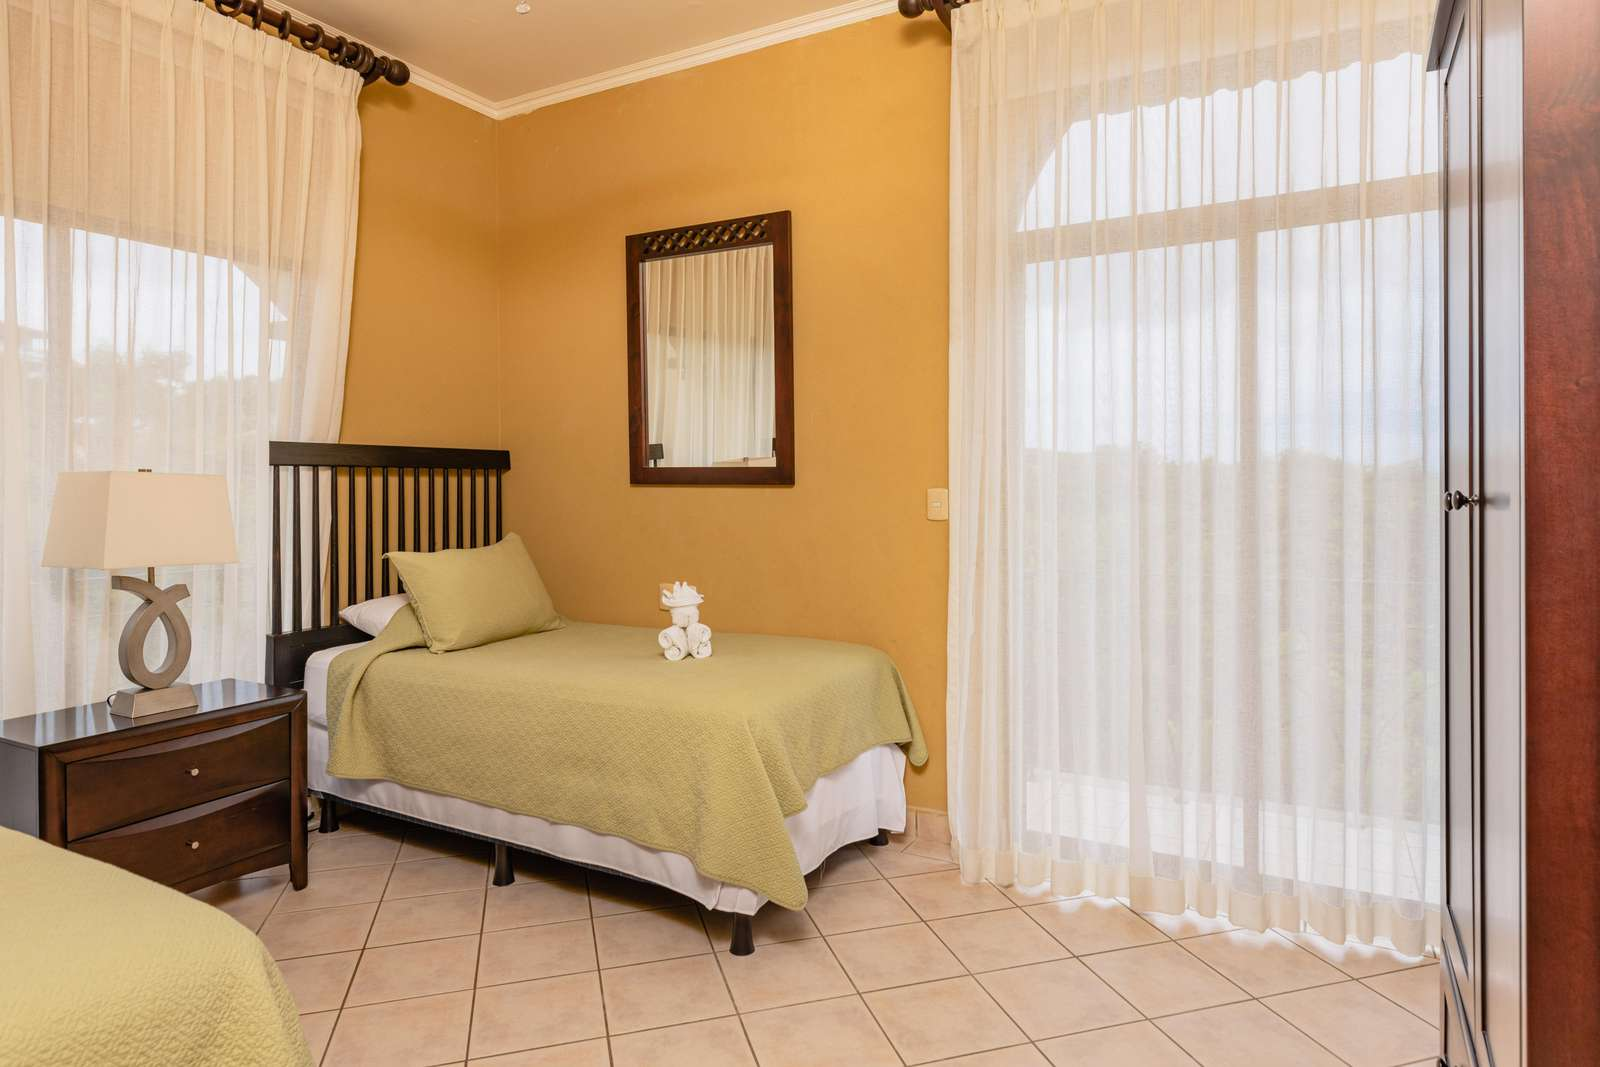 3rd Guest bedroom, 2 Twin beds (can be formed into a king bed upon request)